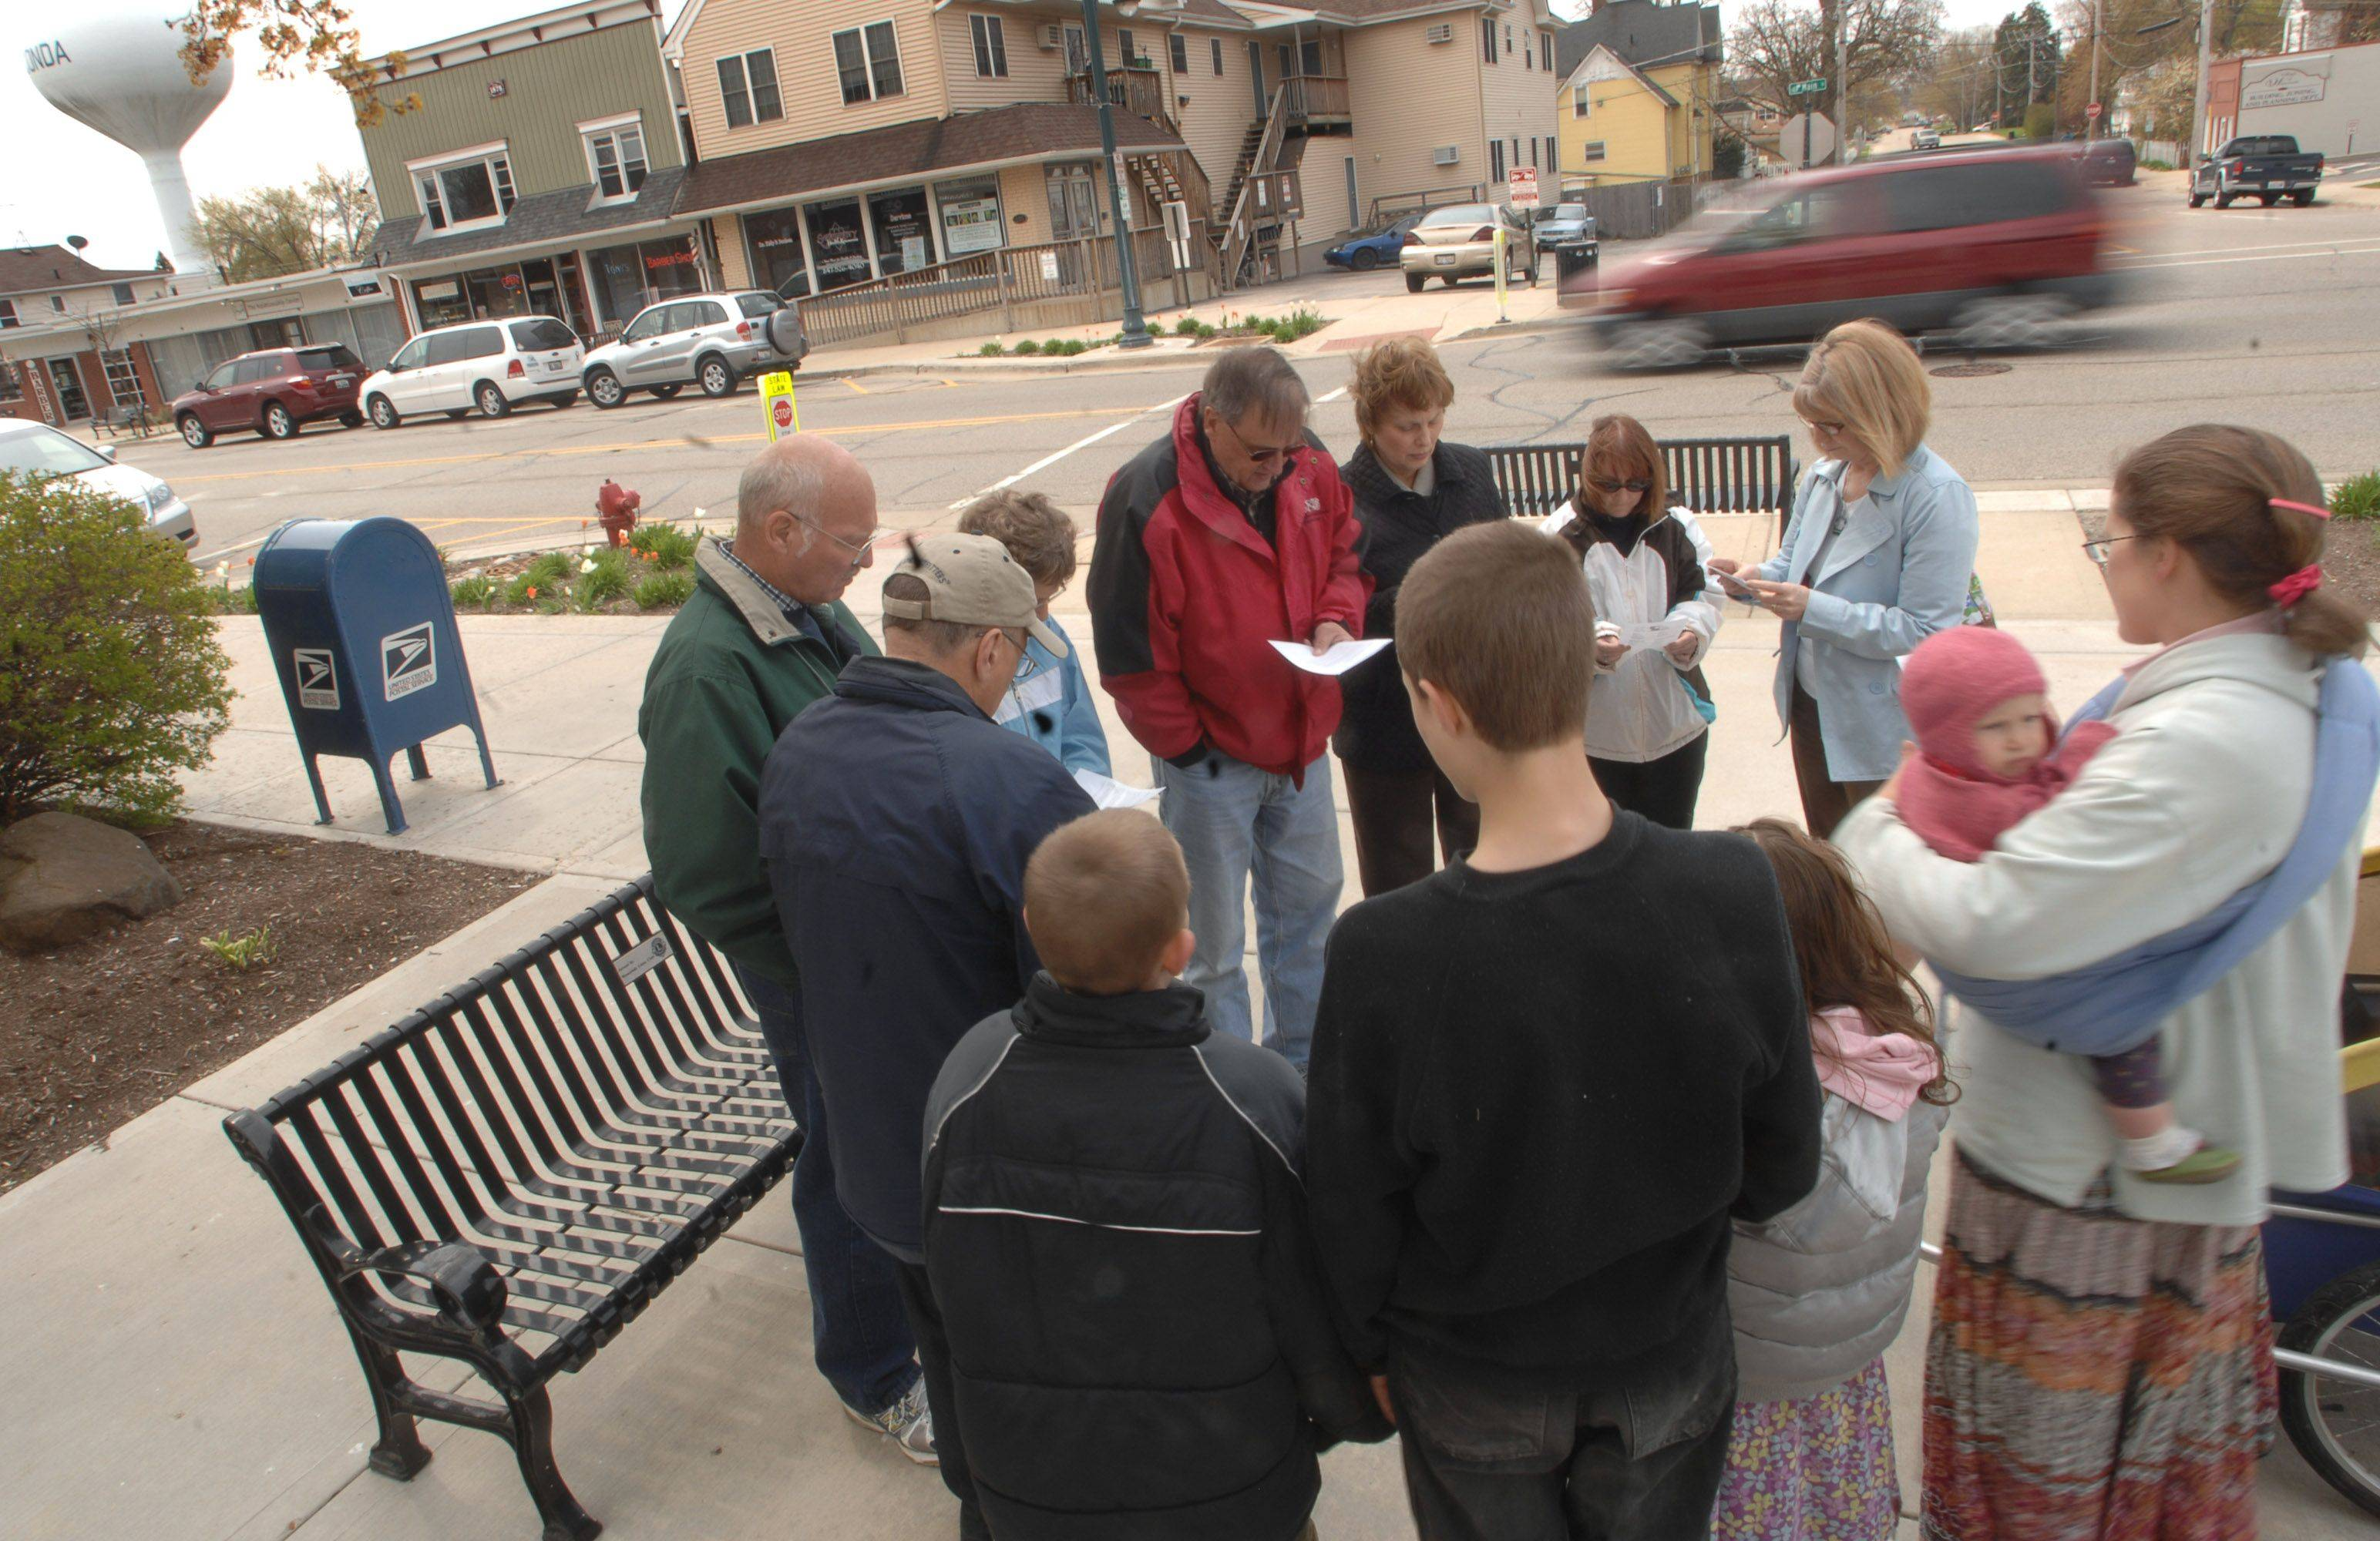 Around a dozen people gathered outside the Village of Wauconda Activity Center on Main Street Thursday to participate in the National Day of Prayer.